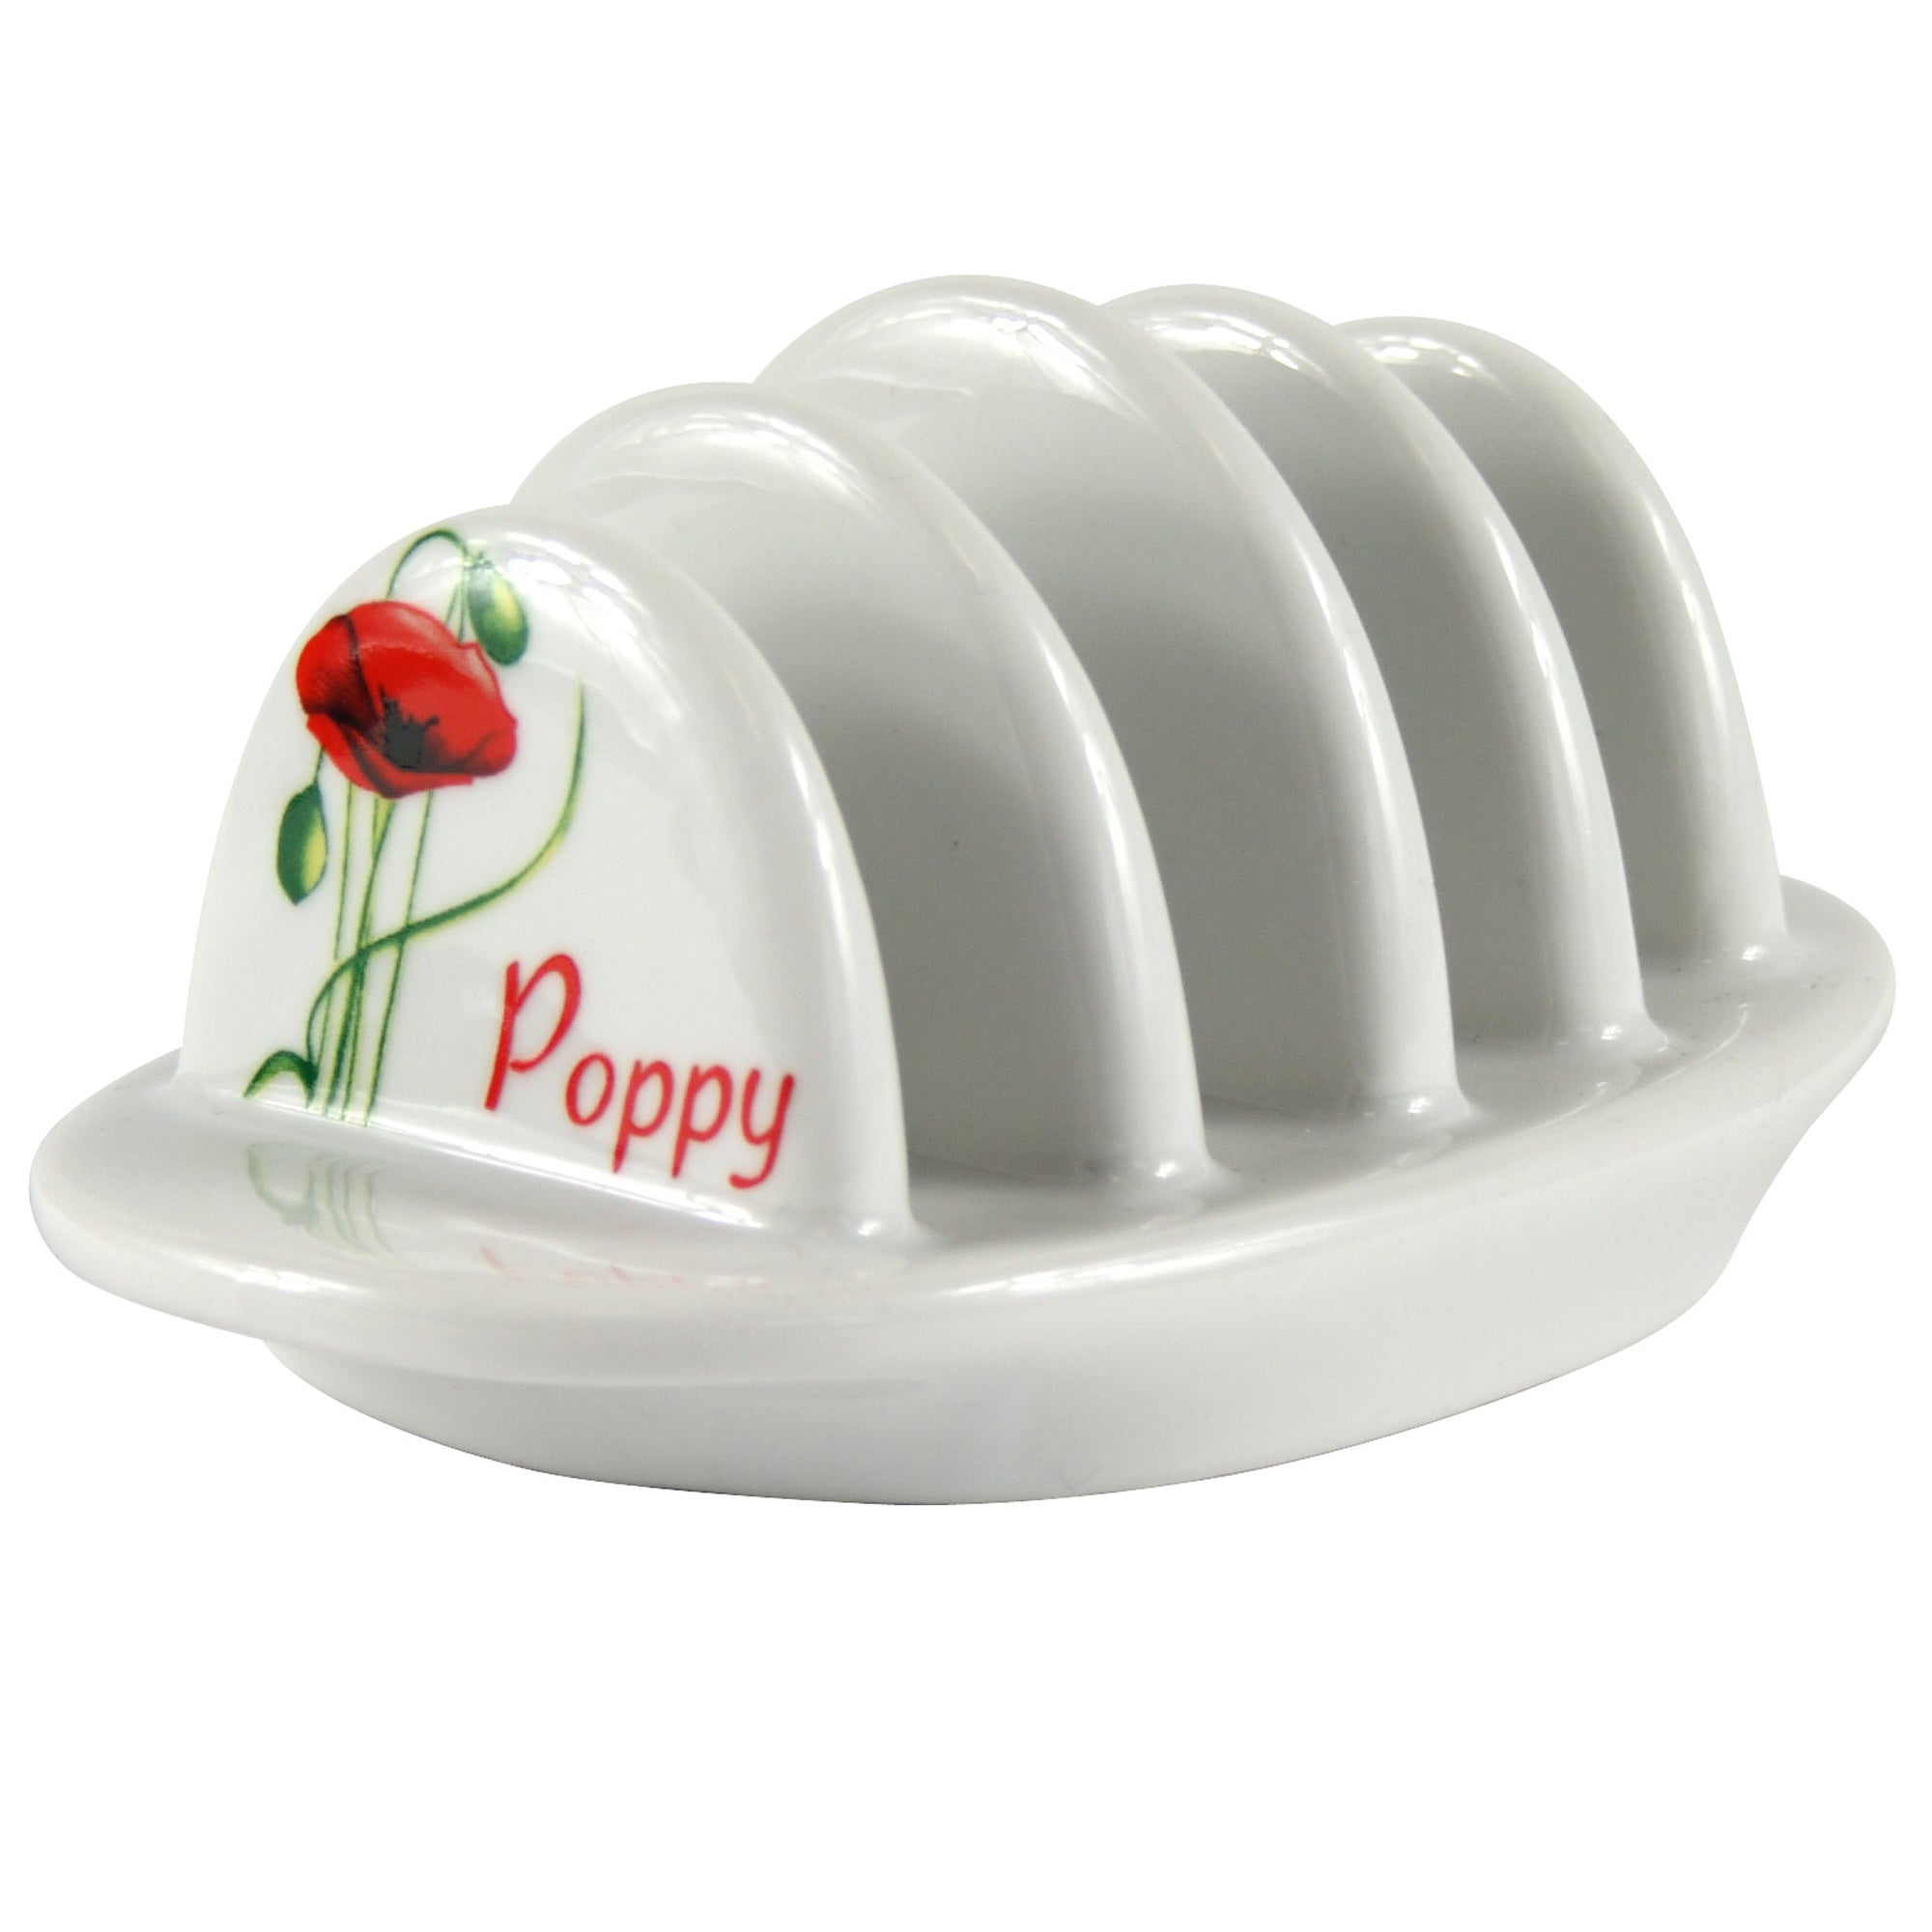 Poppy Collection Toast Rack